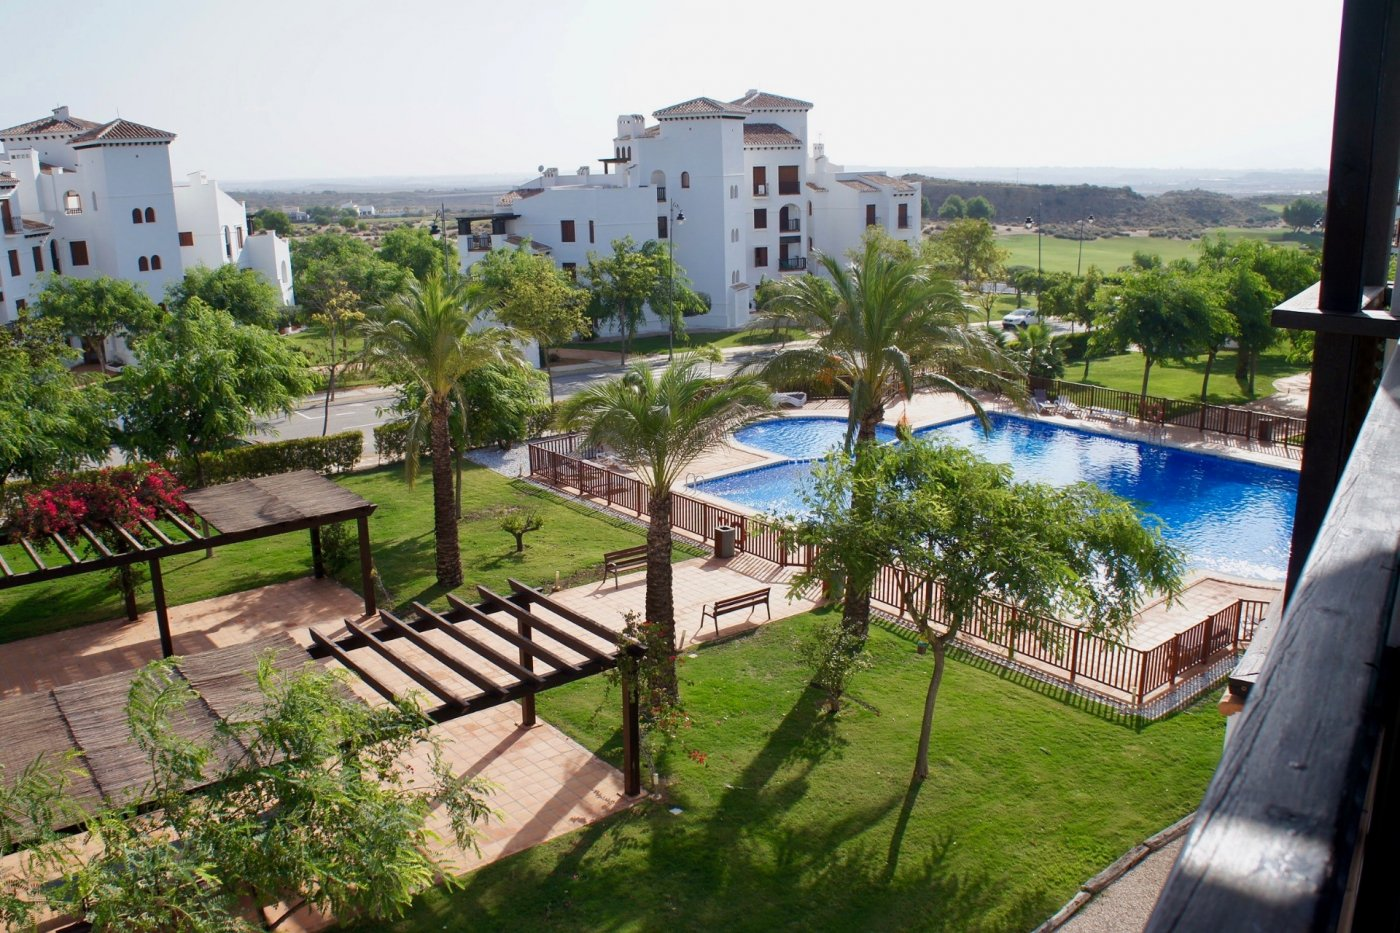 Apartment ref 3265-03023 for sale in El Valle Golf Resort Spain - Quality Homes Costa Cálida